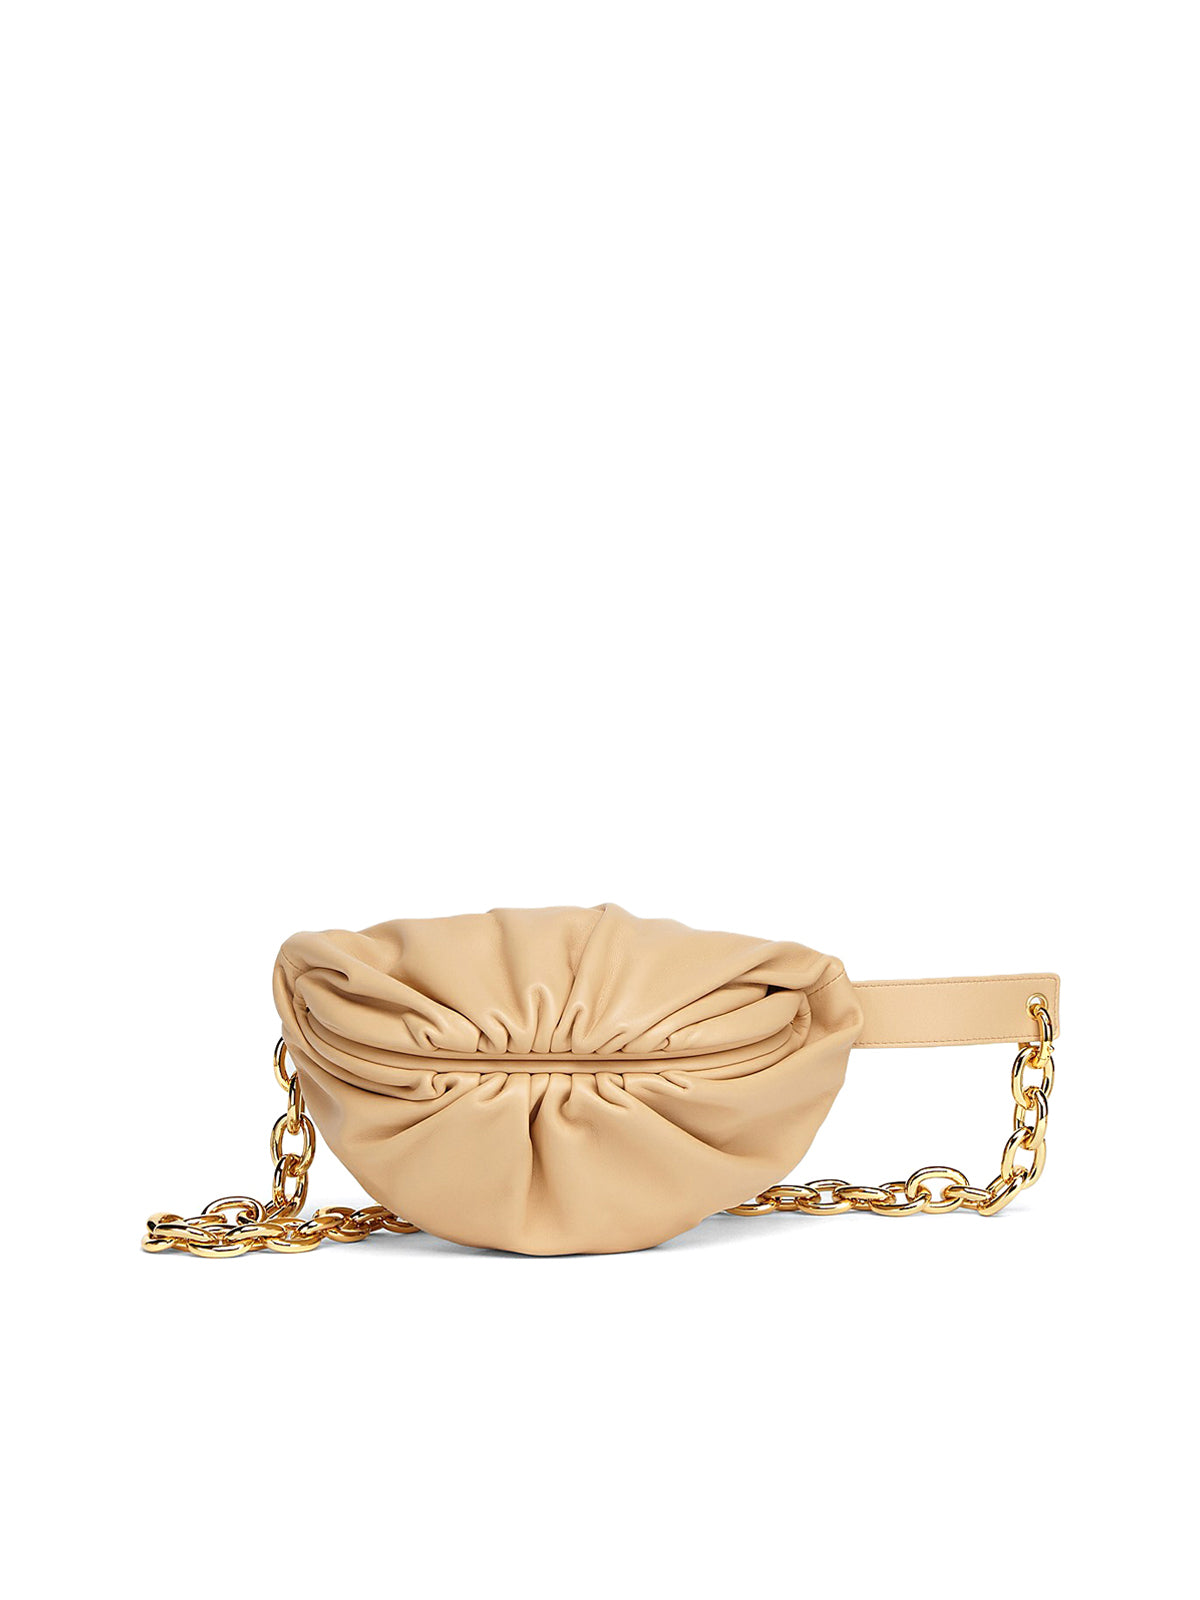 THE BELT CHAIN POUCH